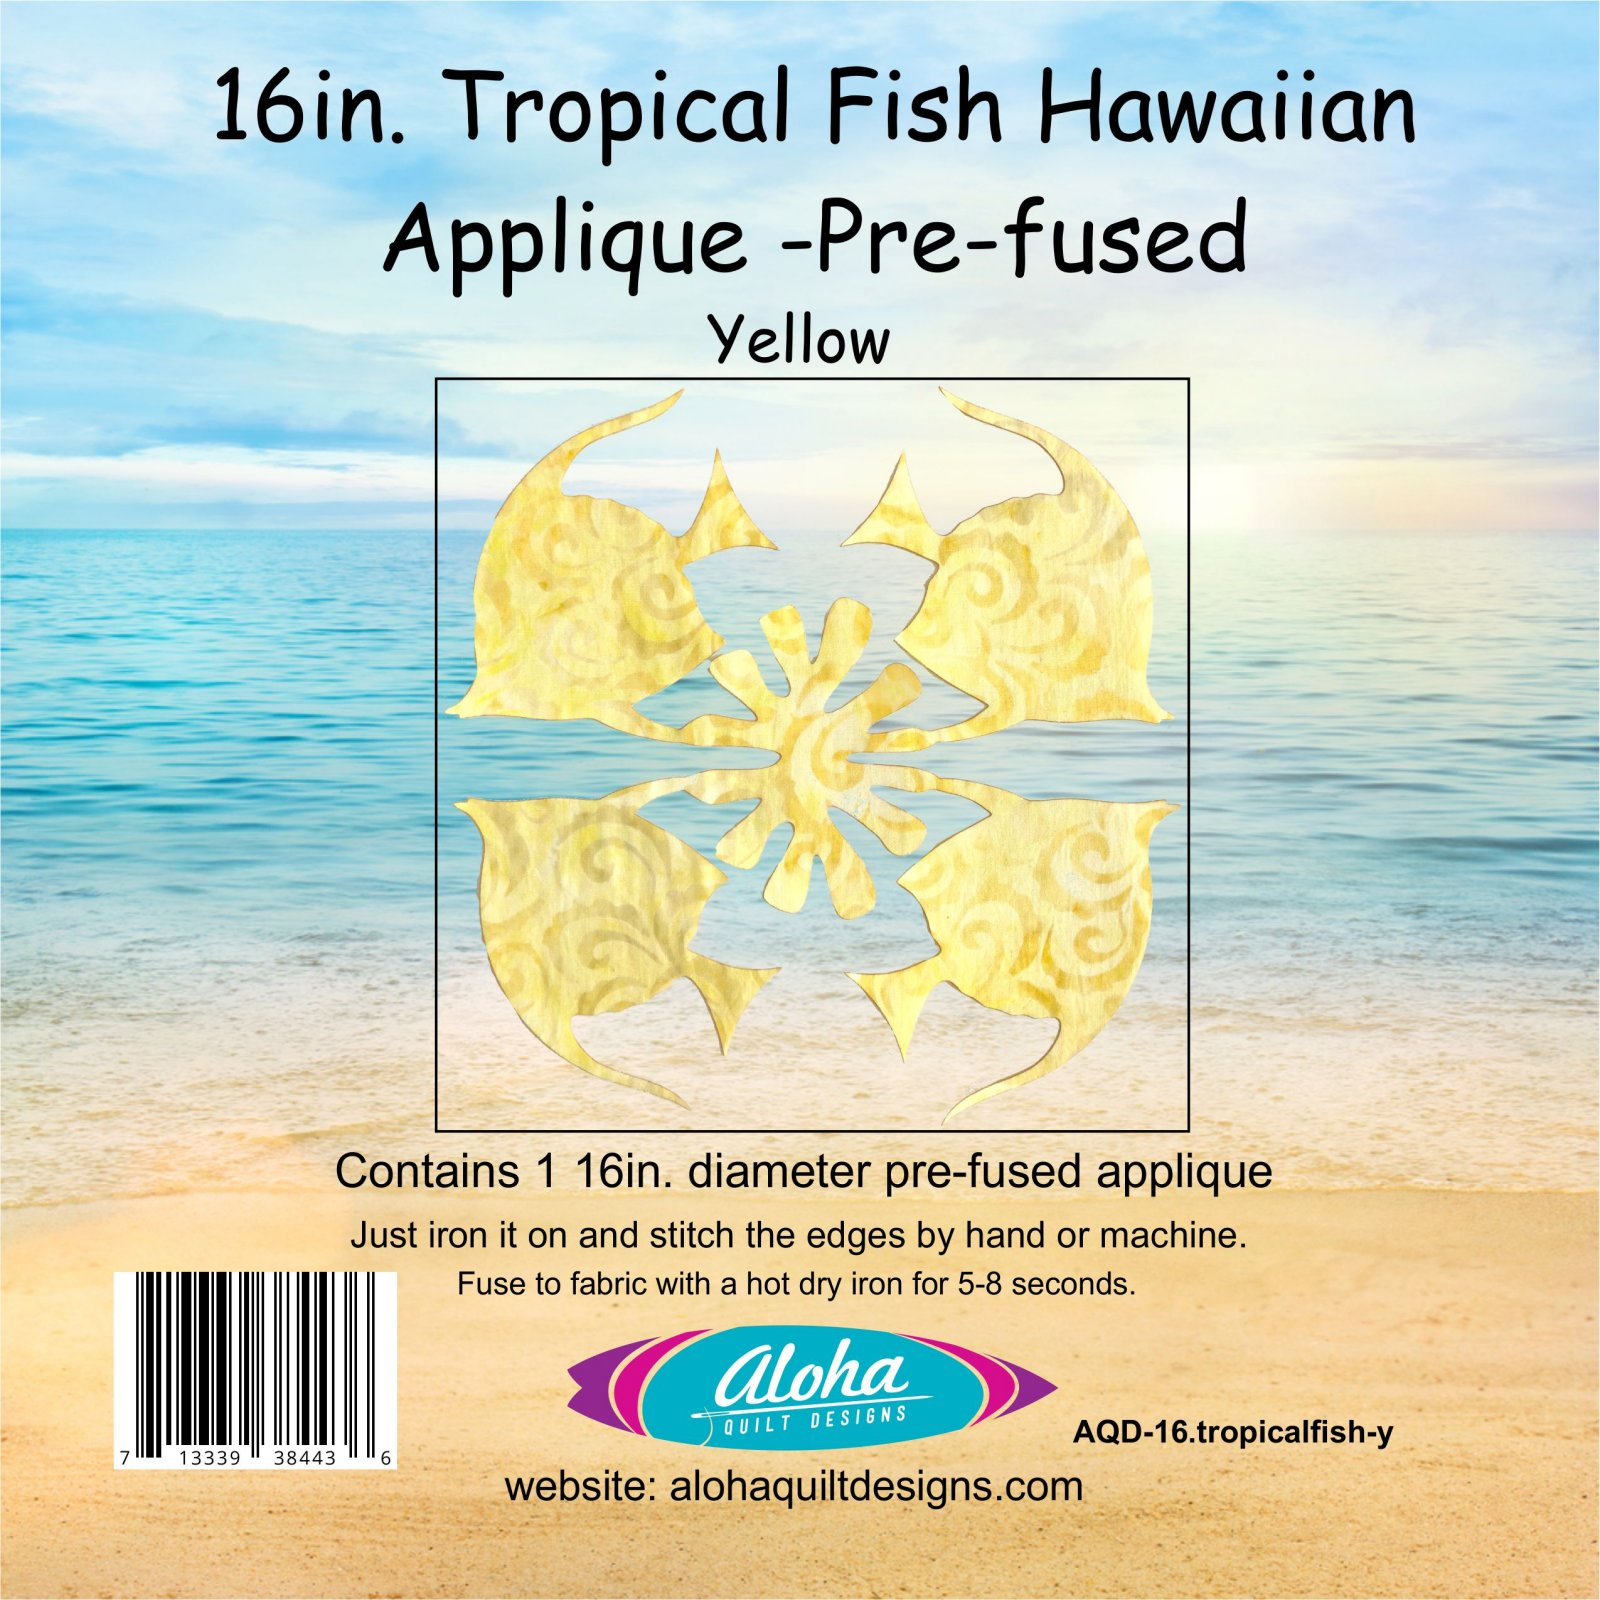 16in. Tropical Fish Hawaiian Applique Needle Turn